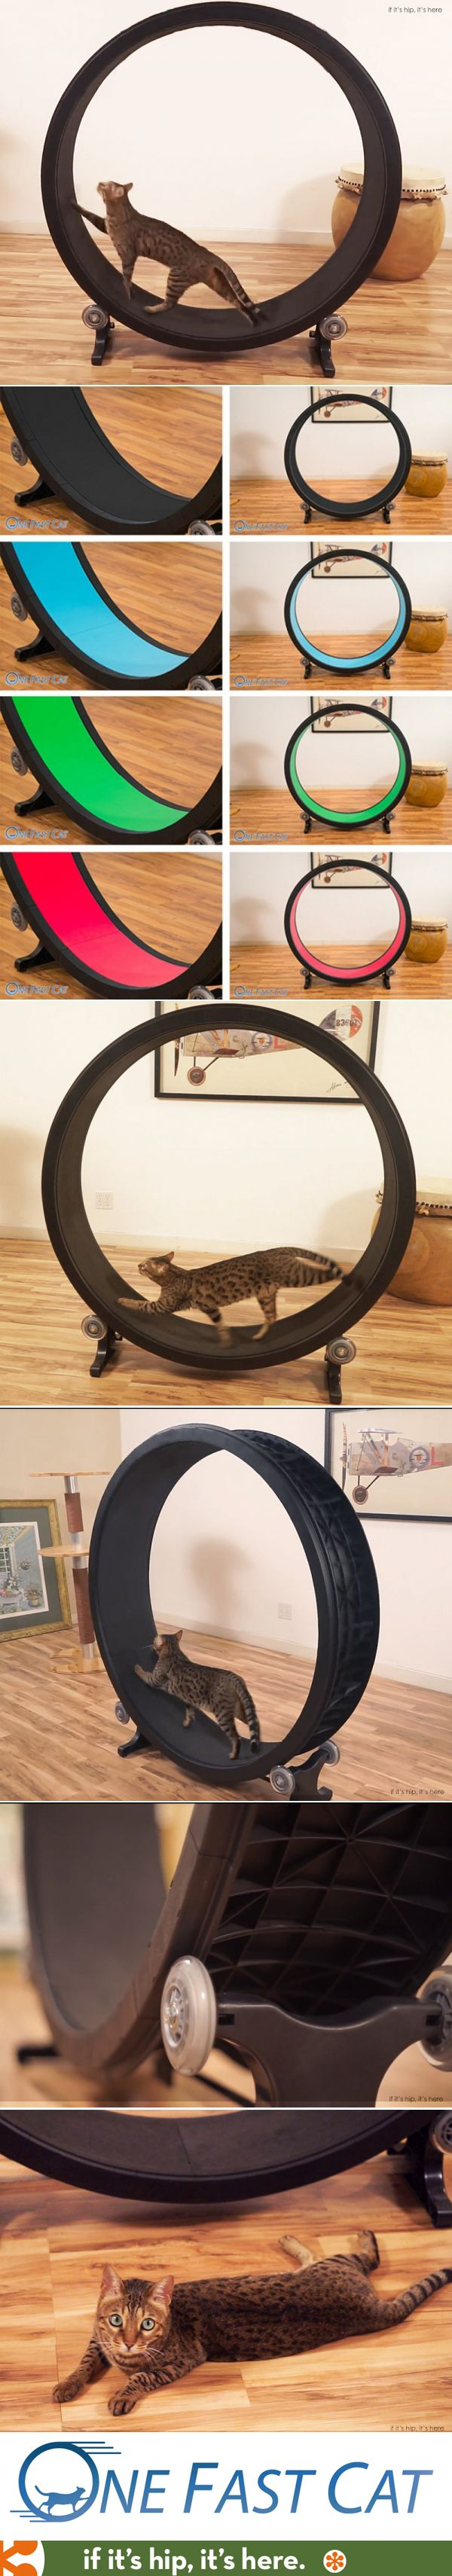 An exercise wheel for Cats! My cat needs one of these! [Would be neat, if mine would actually use it]: Indoor Cat, Furniture Pet, For The Cat, Cat Exercise, Cat Tree, For Cat